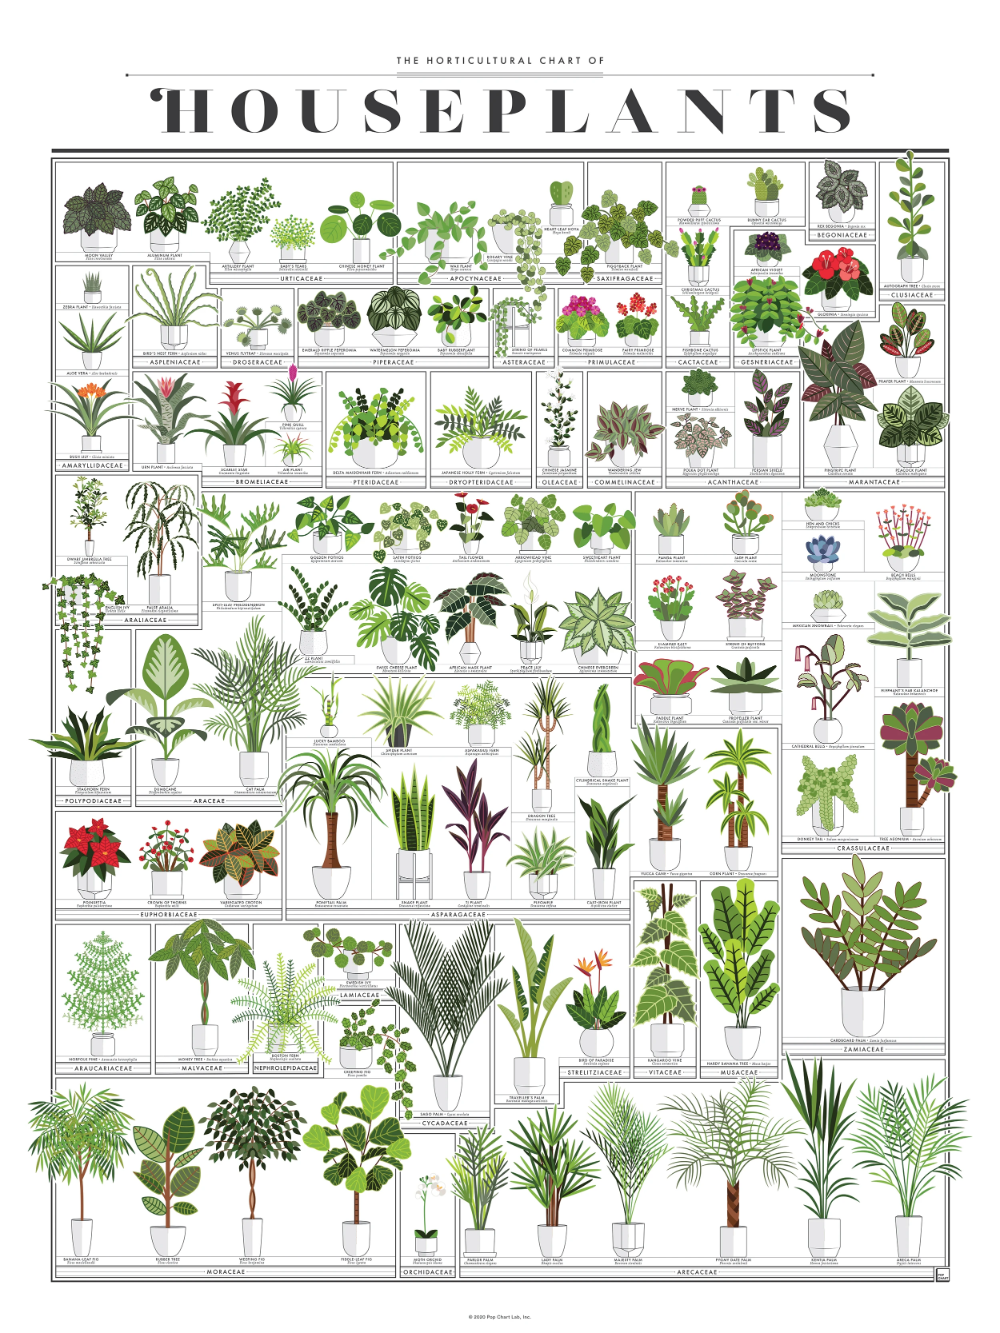 The Horticultural Chart of Houseplants